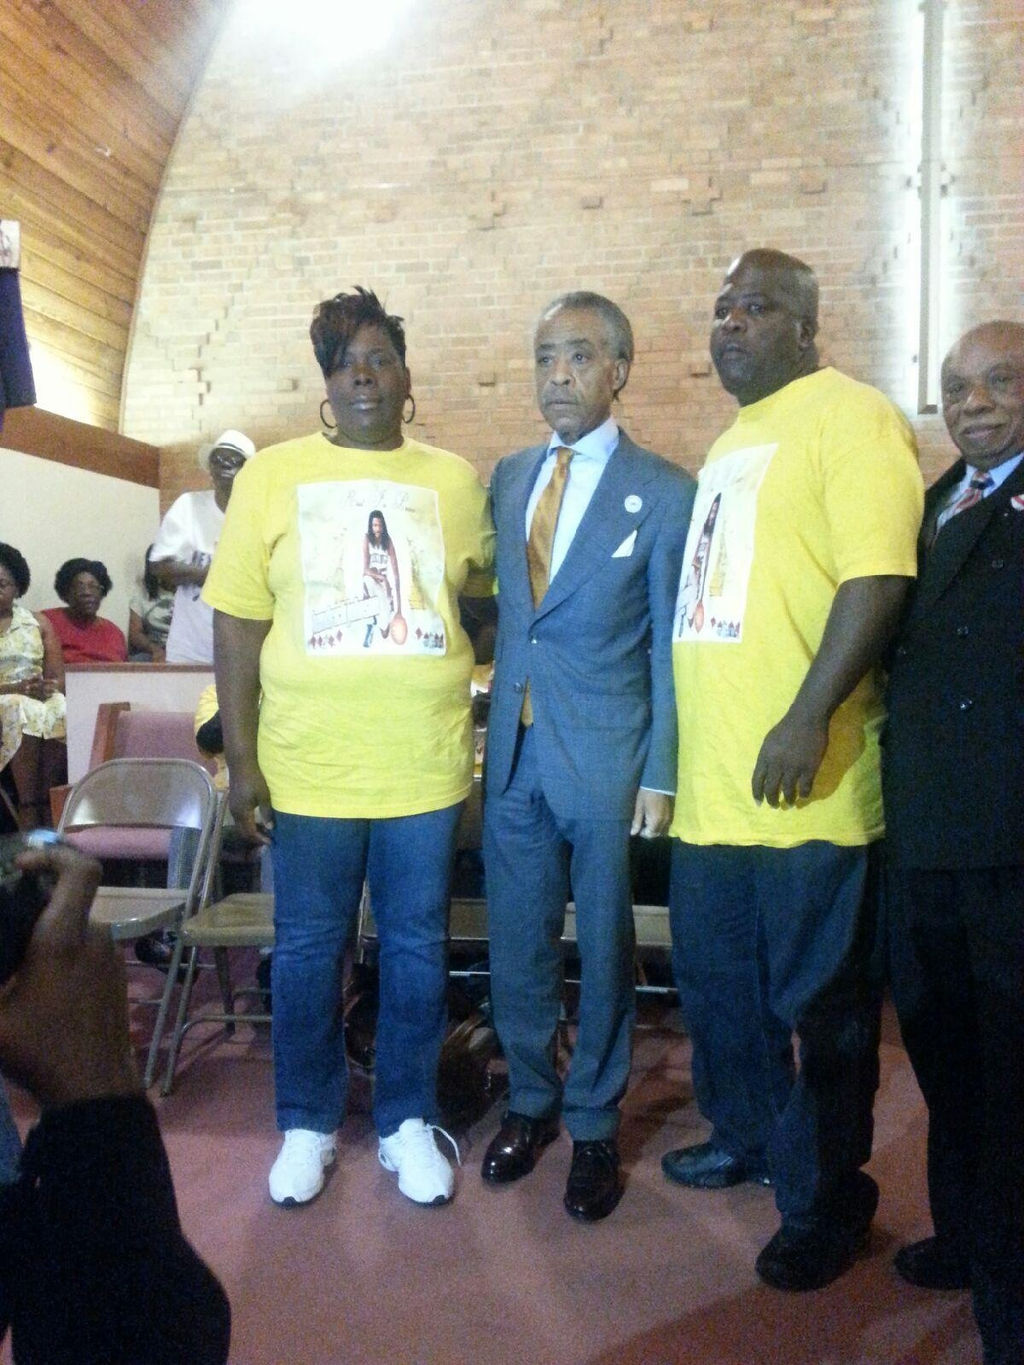 Rev. Sharpton and the Johnsons.jpg